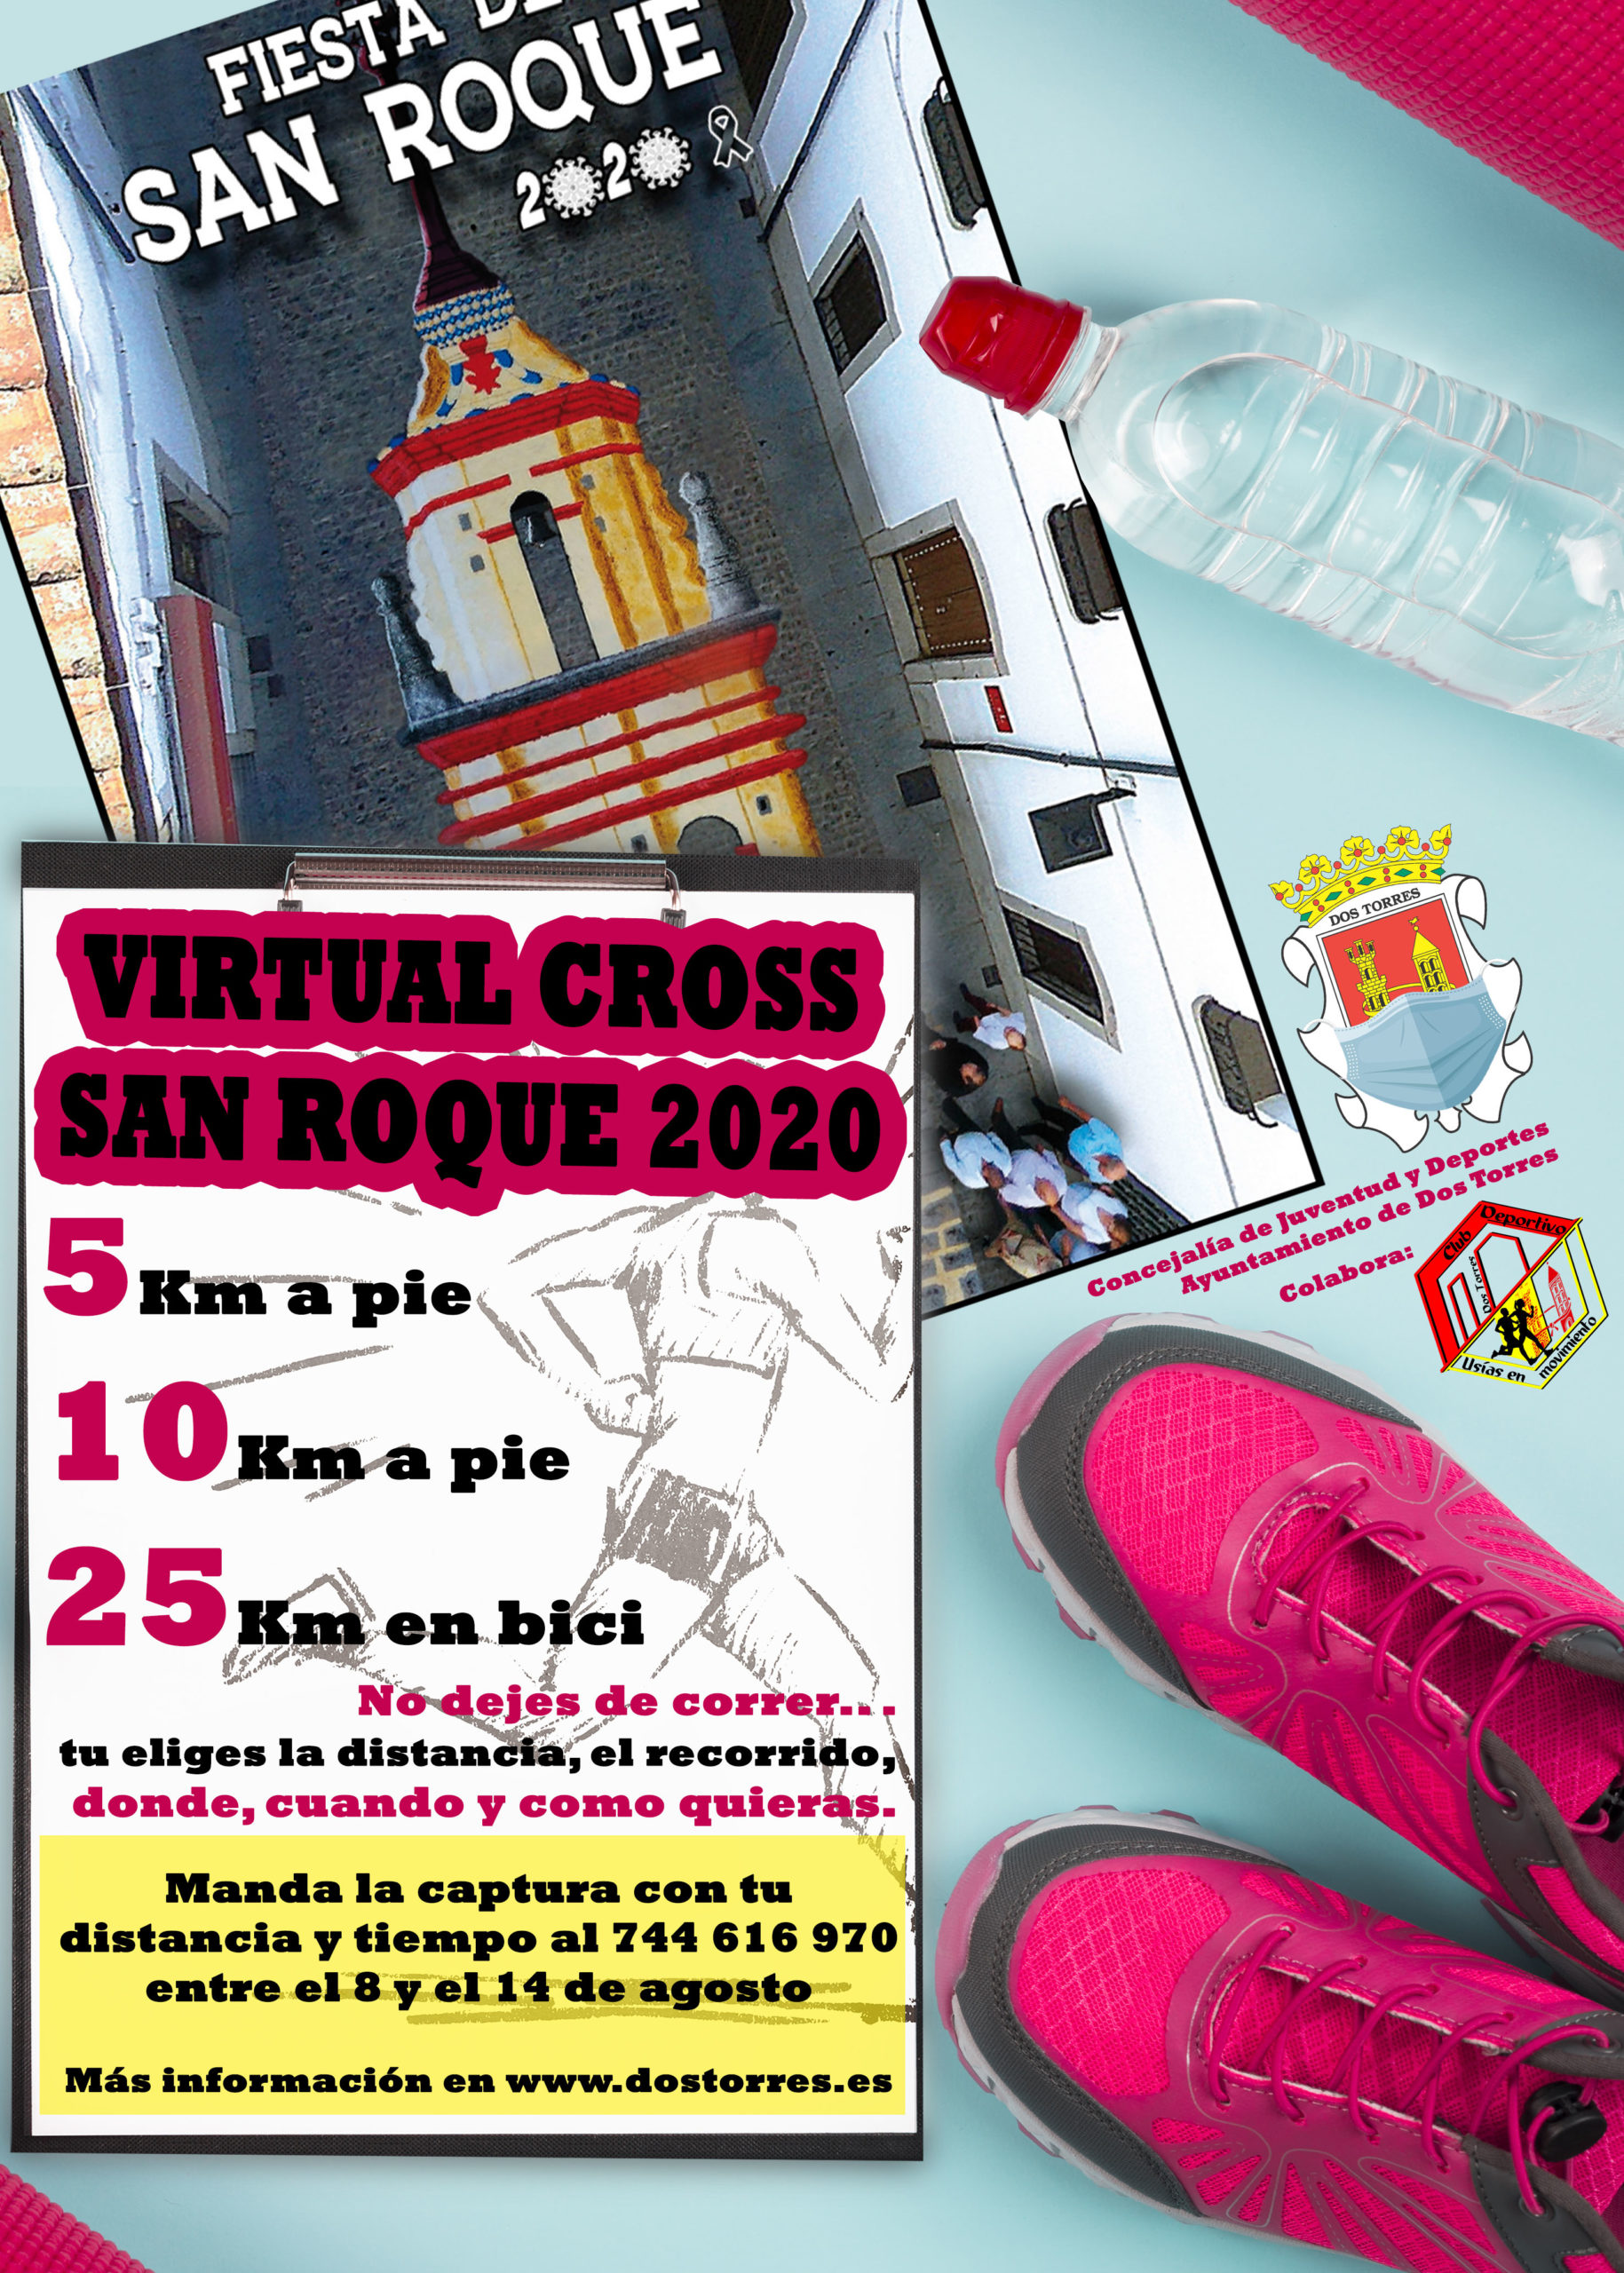 VIRTUAL CROSS SAN ROQUE